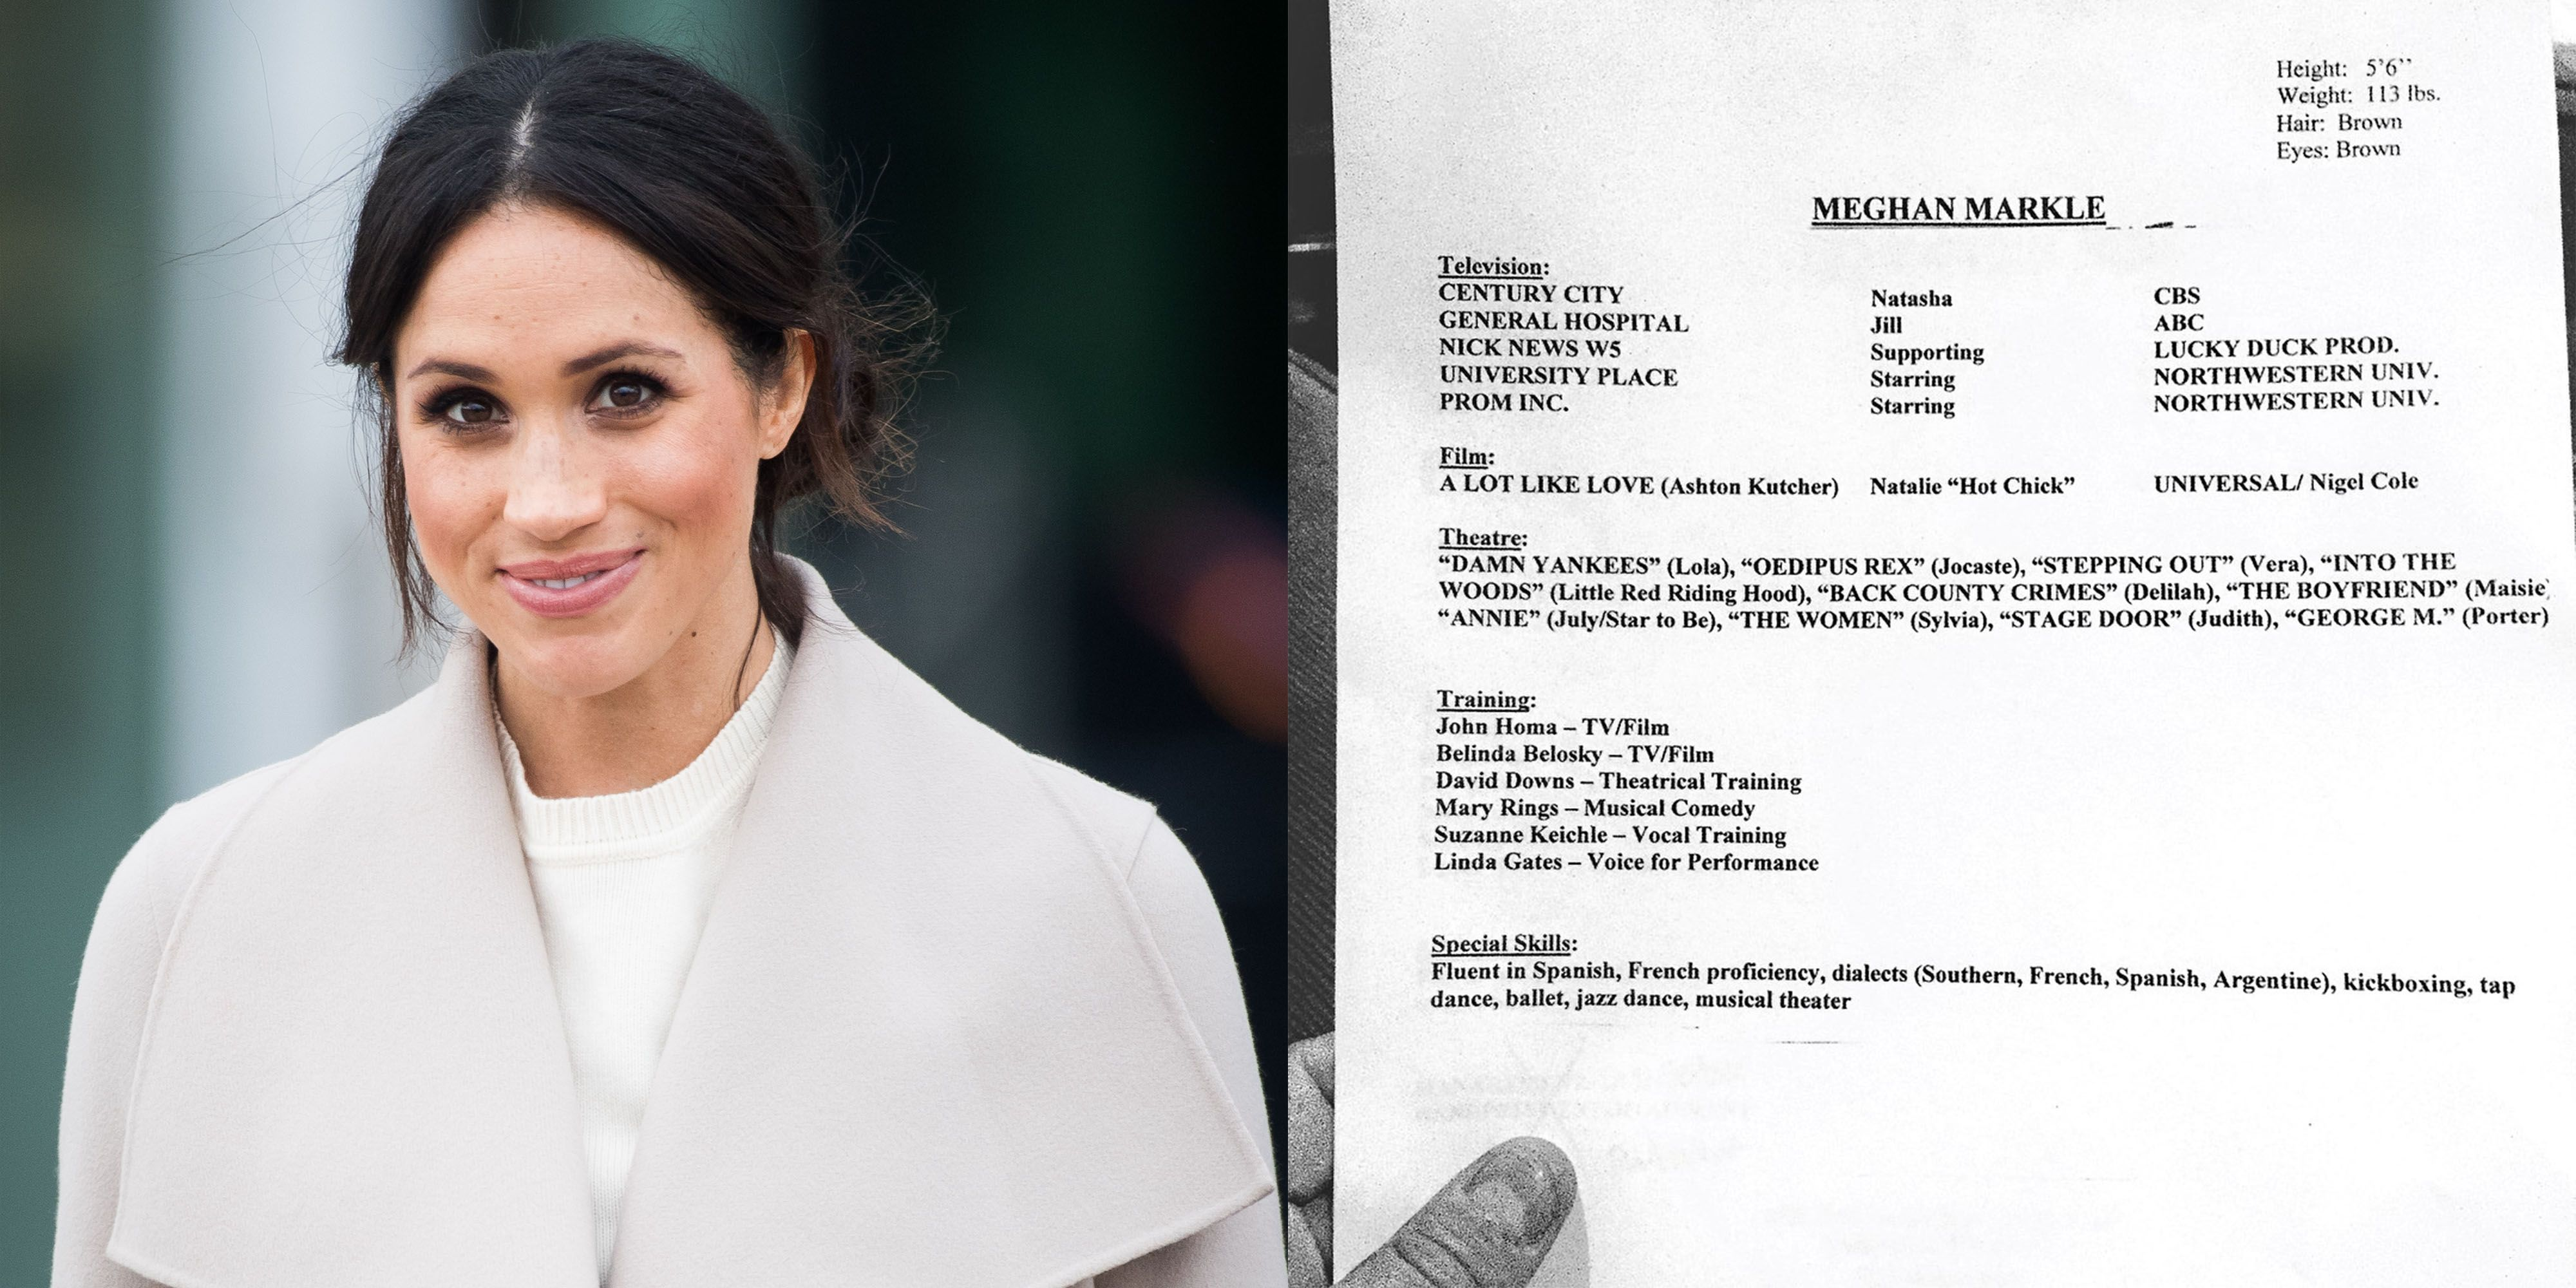 Meghan Markle's Old Acting Résumé and Headshot Have Been Unearthed